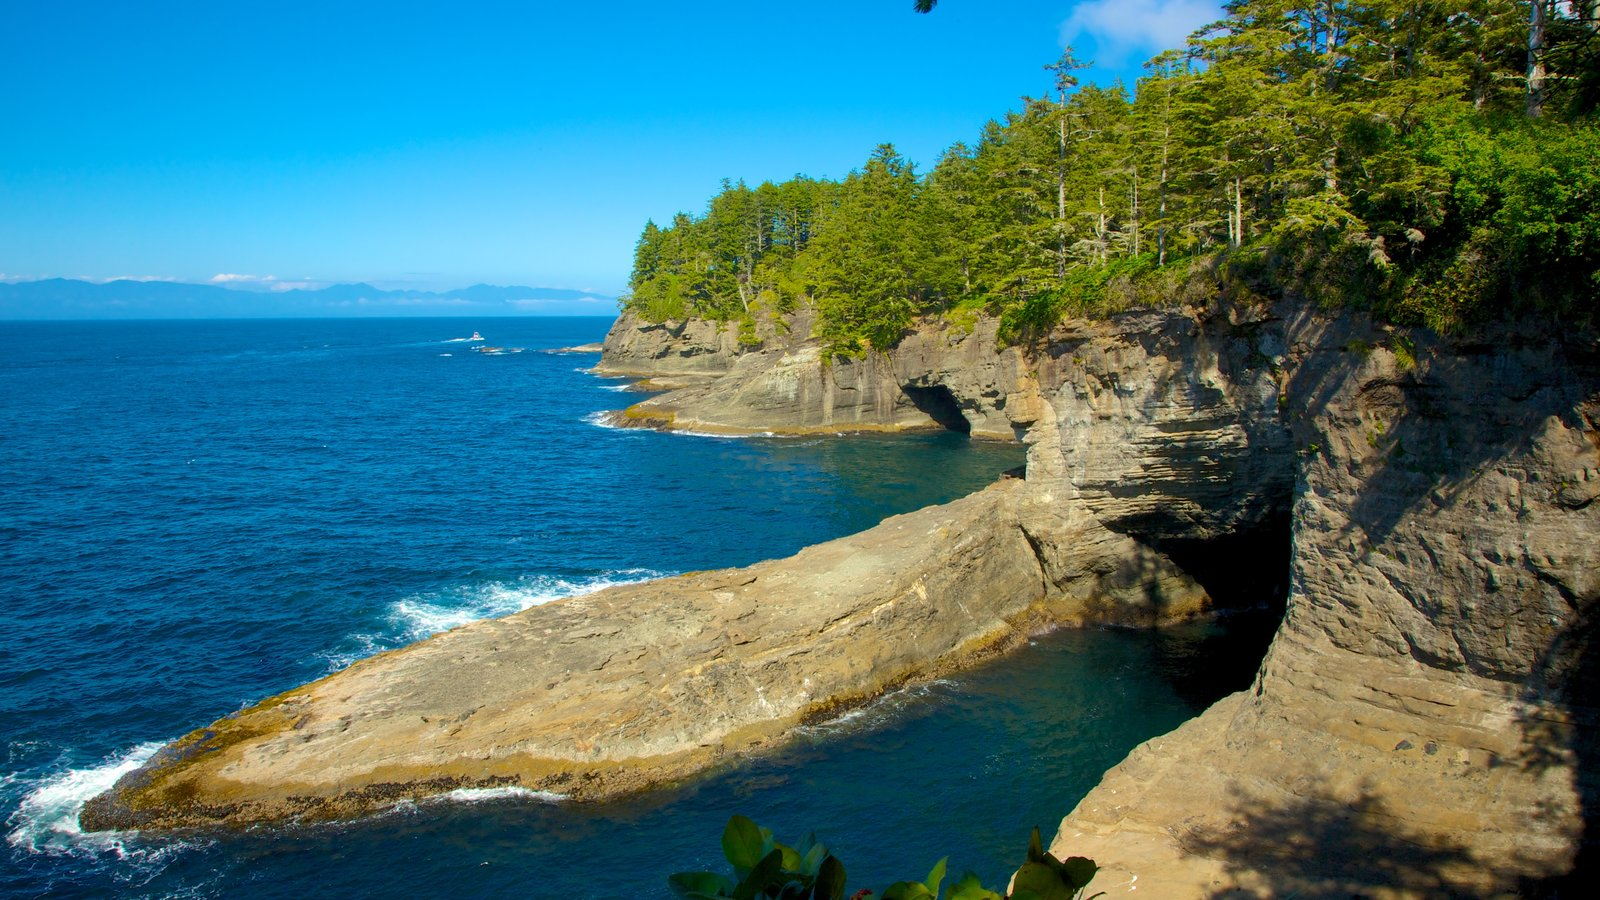 Cape Flattery featuring forests, landscape views and rocky coastline